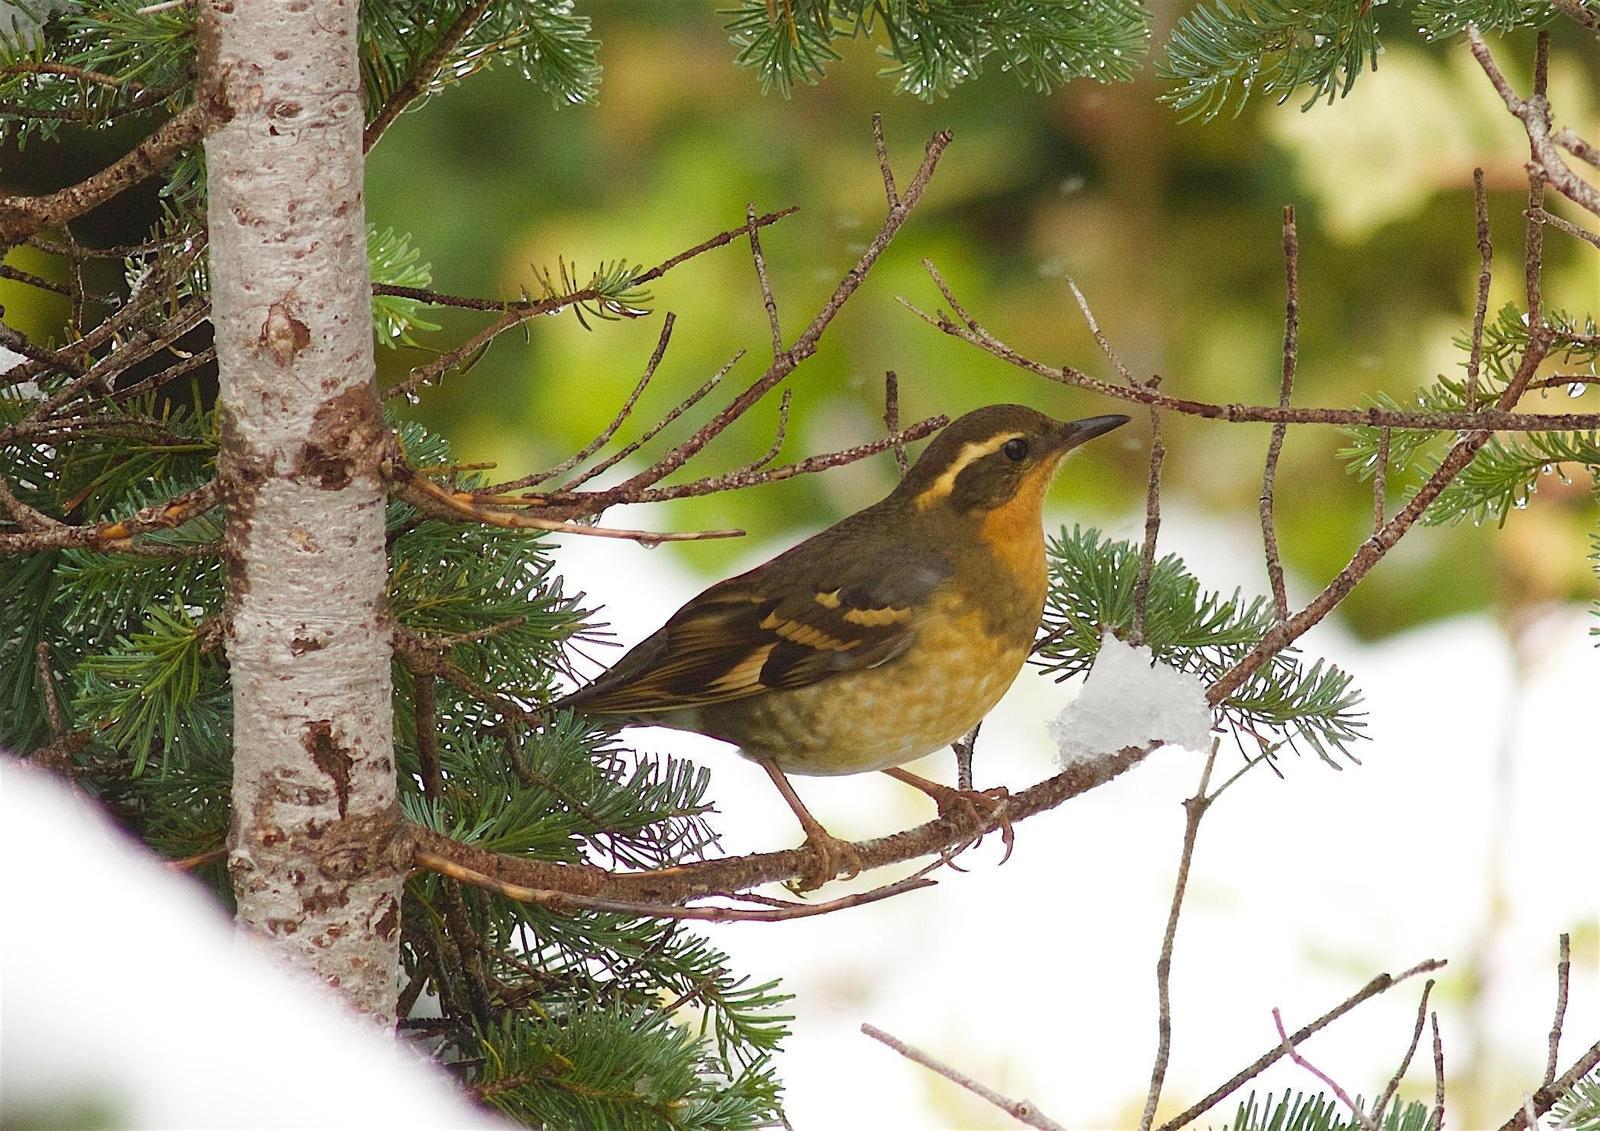 Varied Thrush Photo by Kathryn Keith